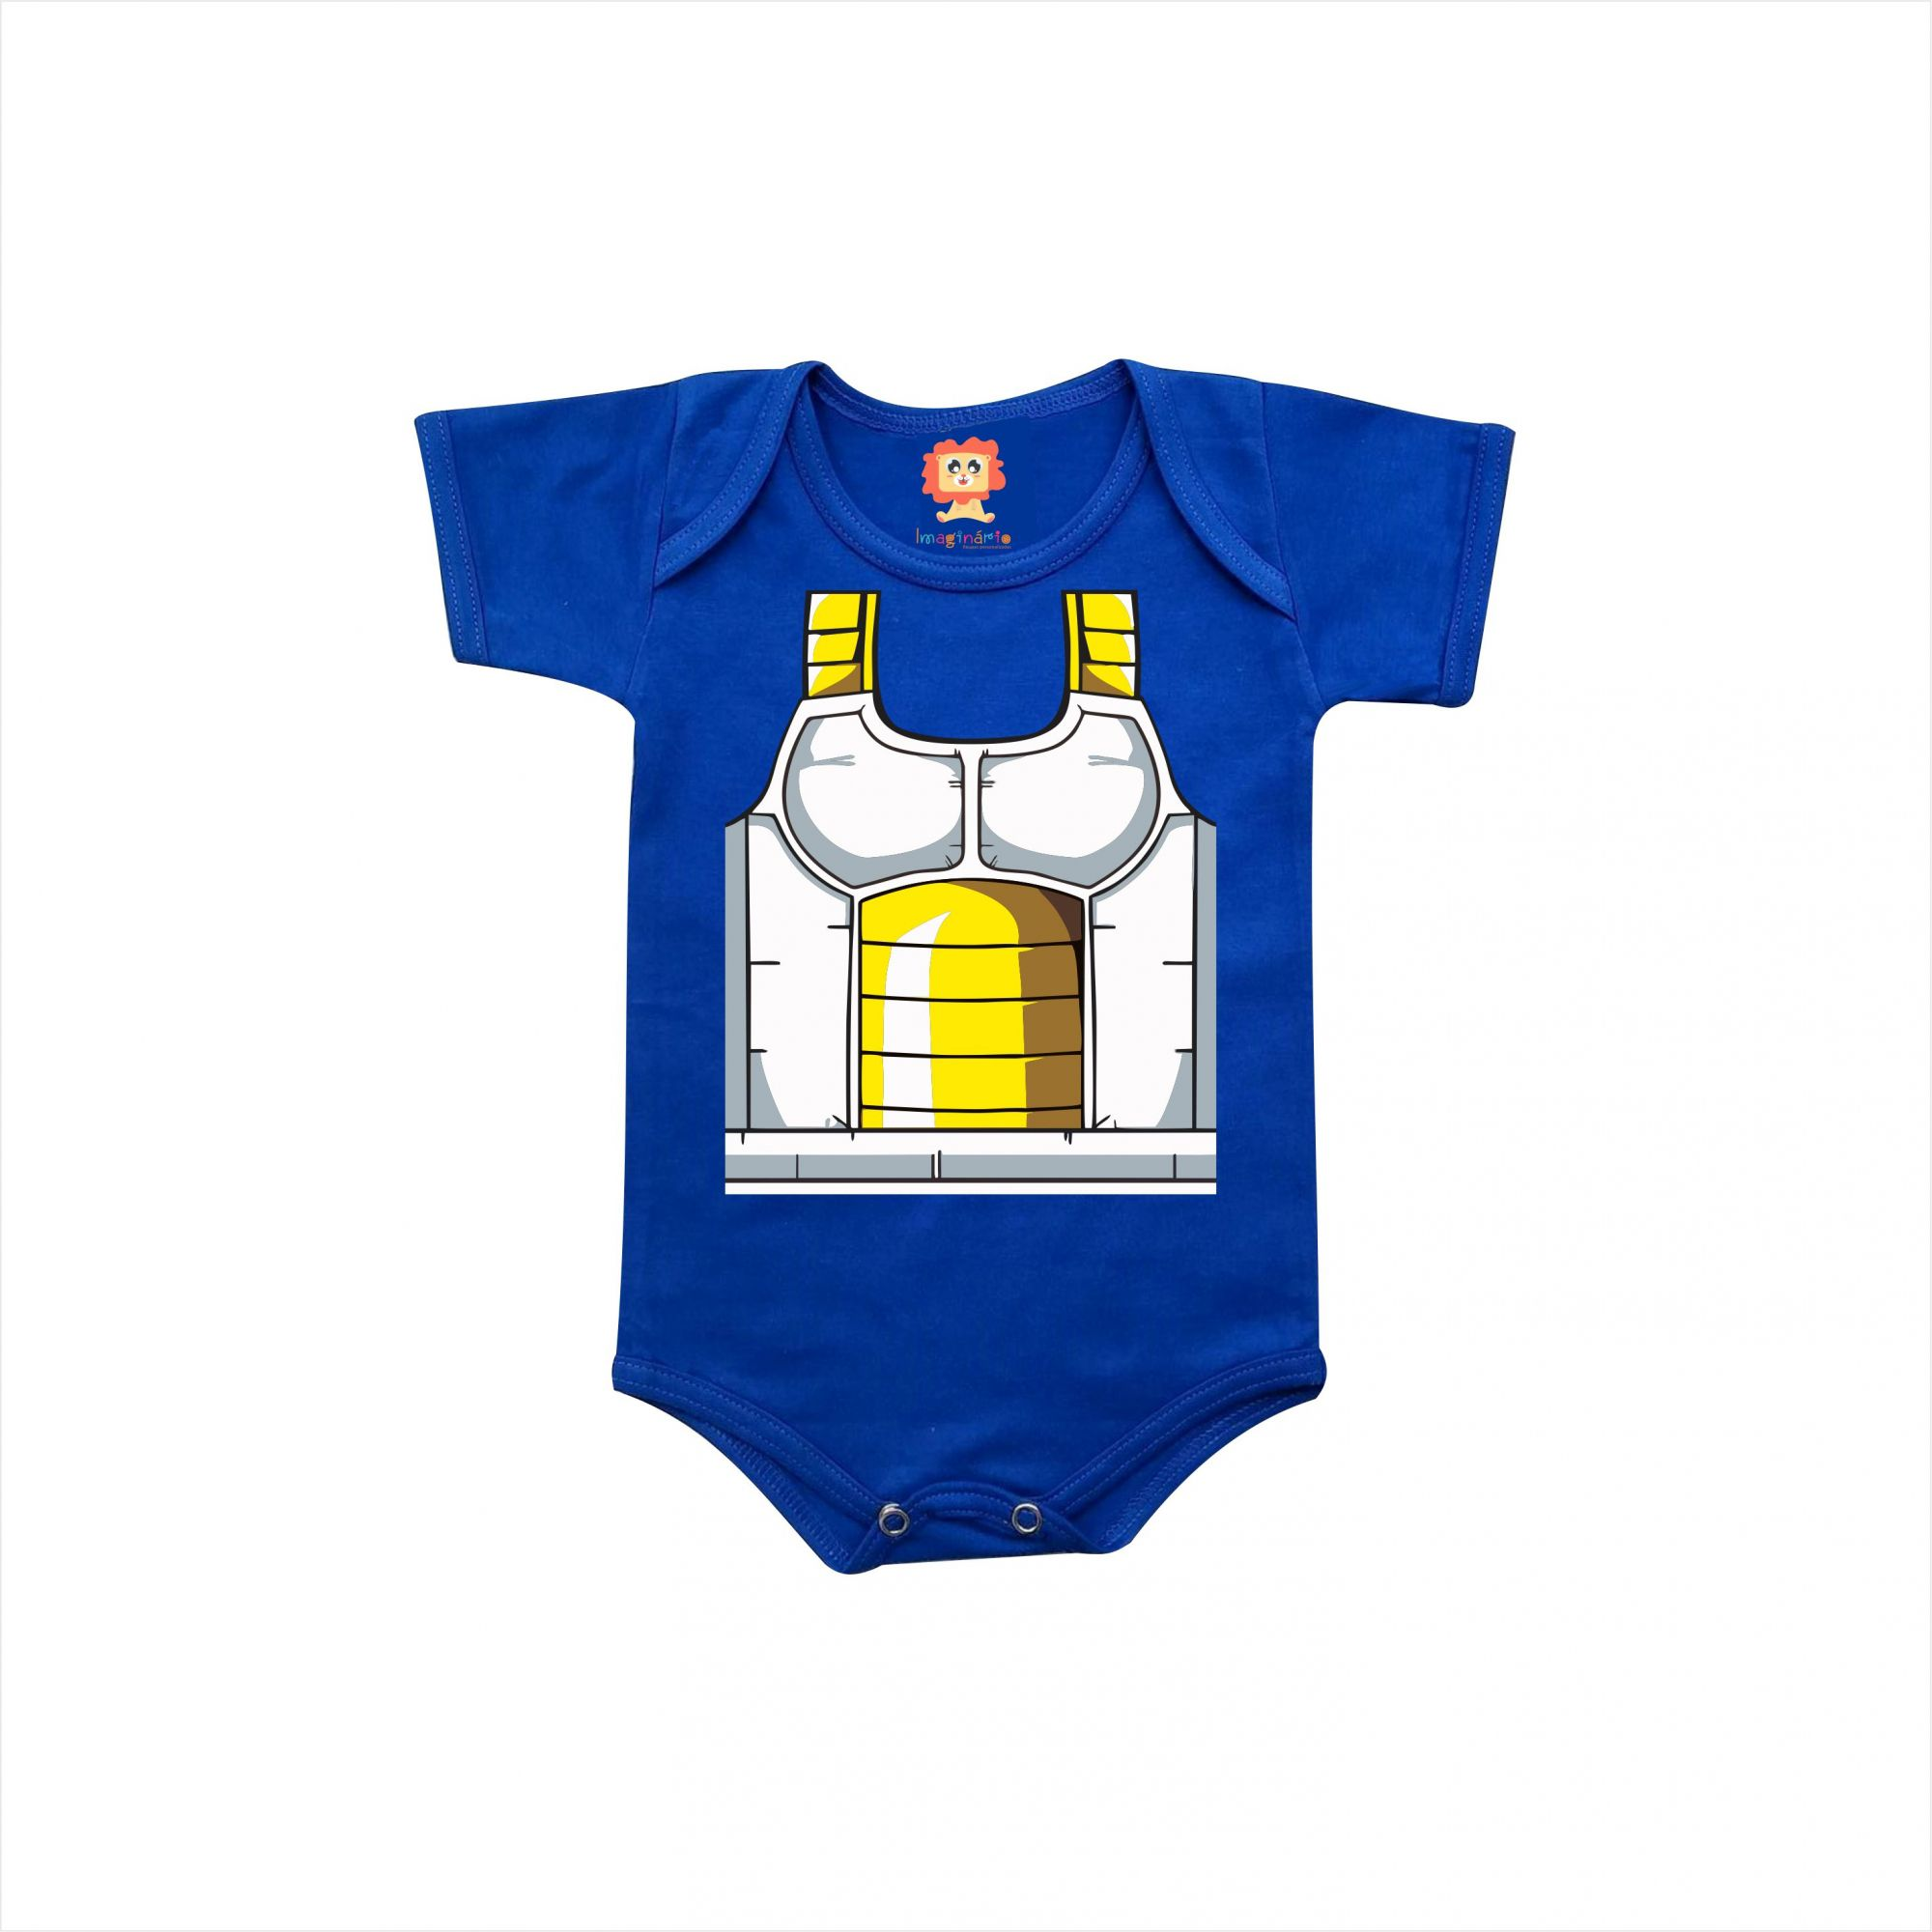 Body De Bebê Ou Camiseta Dragon Ball Vegeta Geek Baby  Fantasia